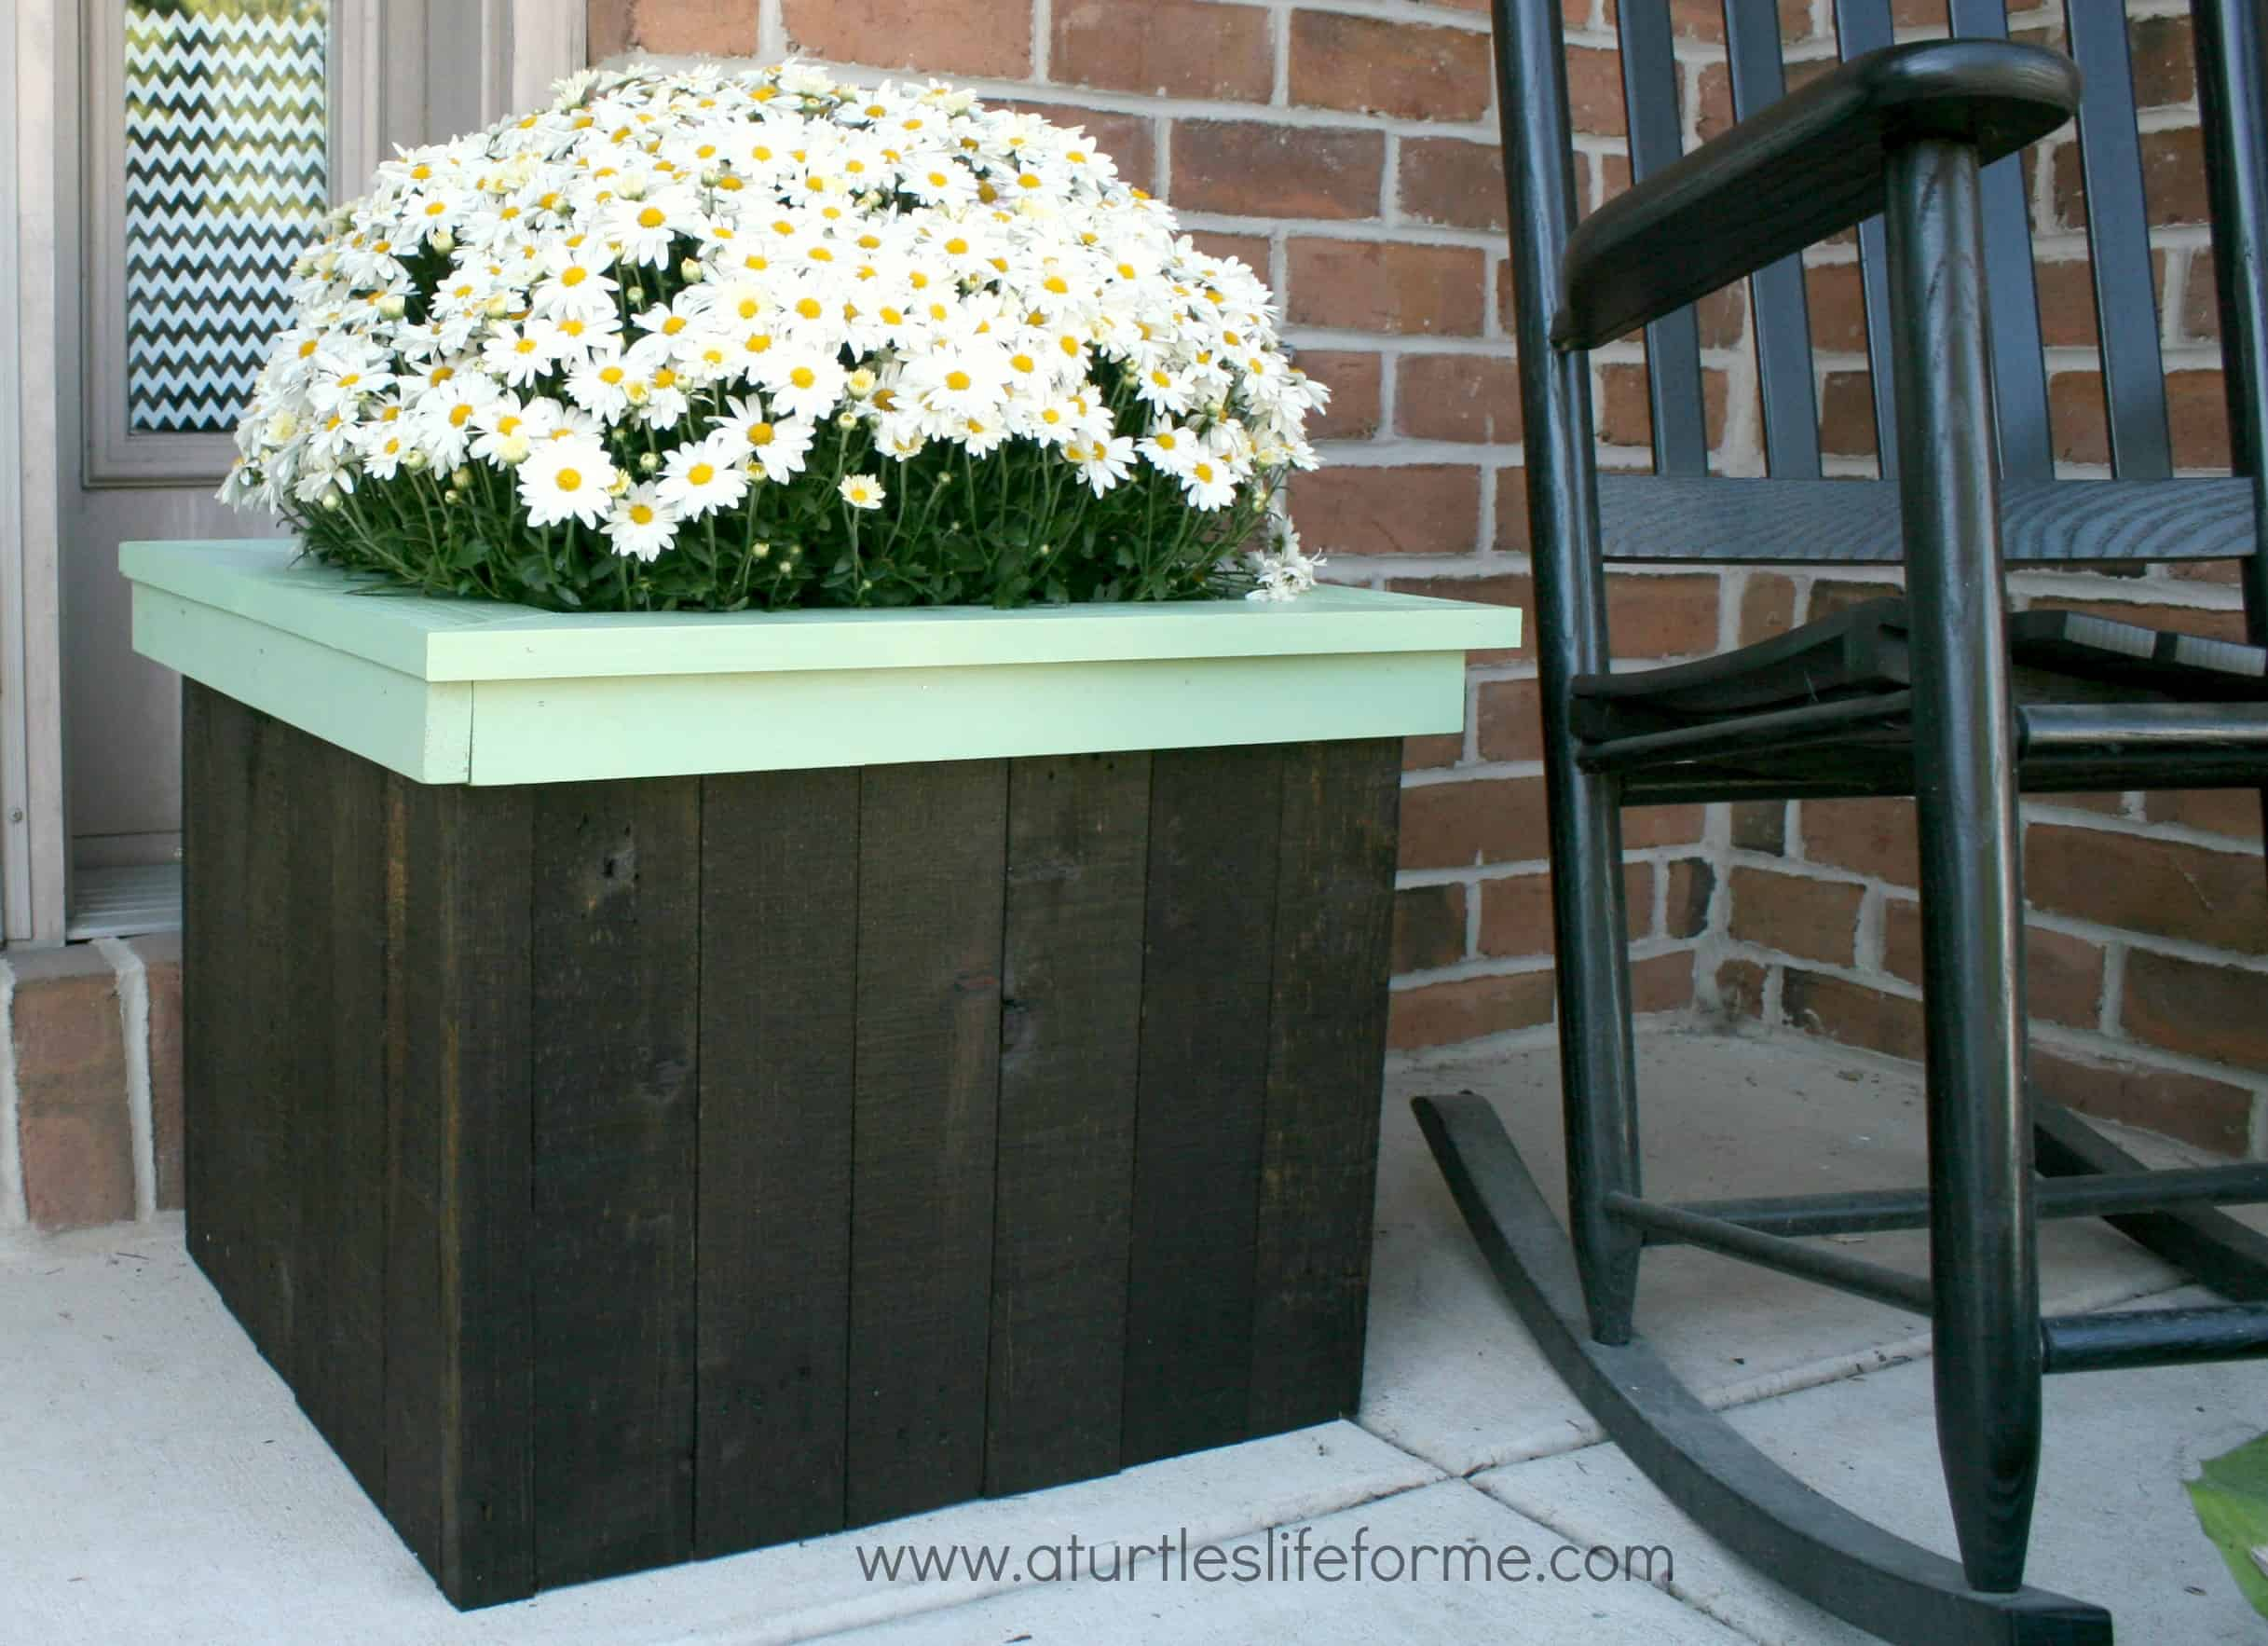 Flower planters from free pallets a turtle 39 s life for me for Making planters from pallets